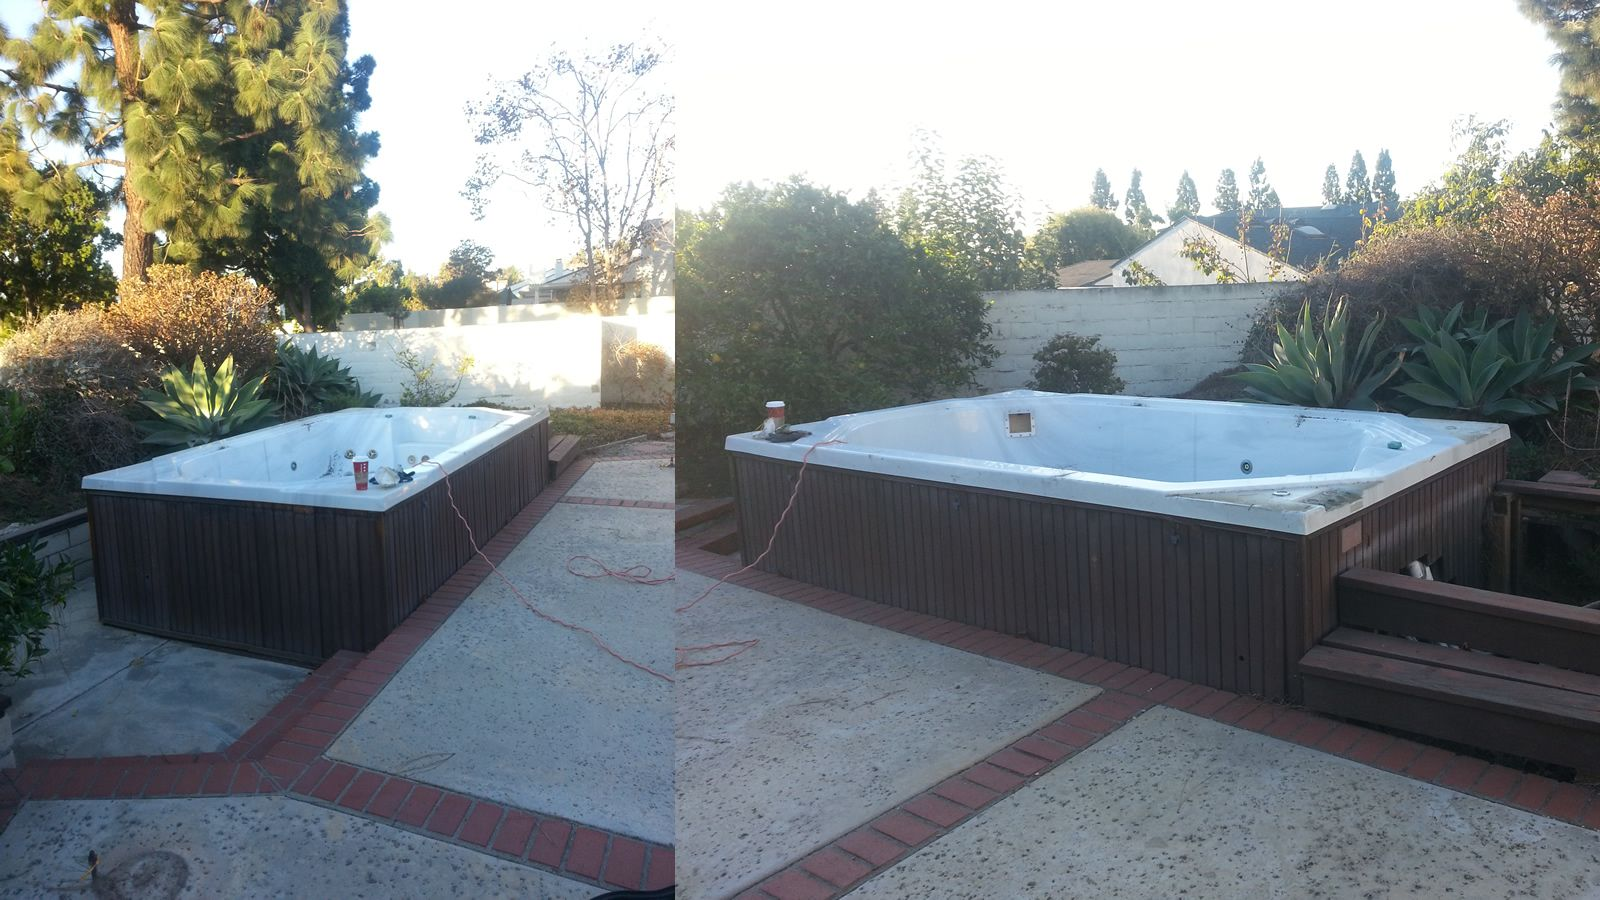 Swim spa hot tub removal in Menifee CA after